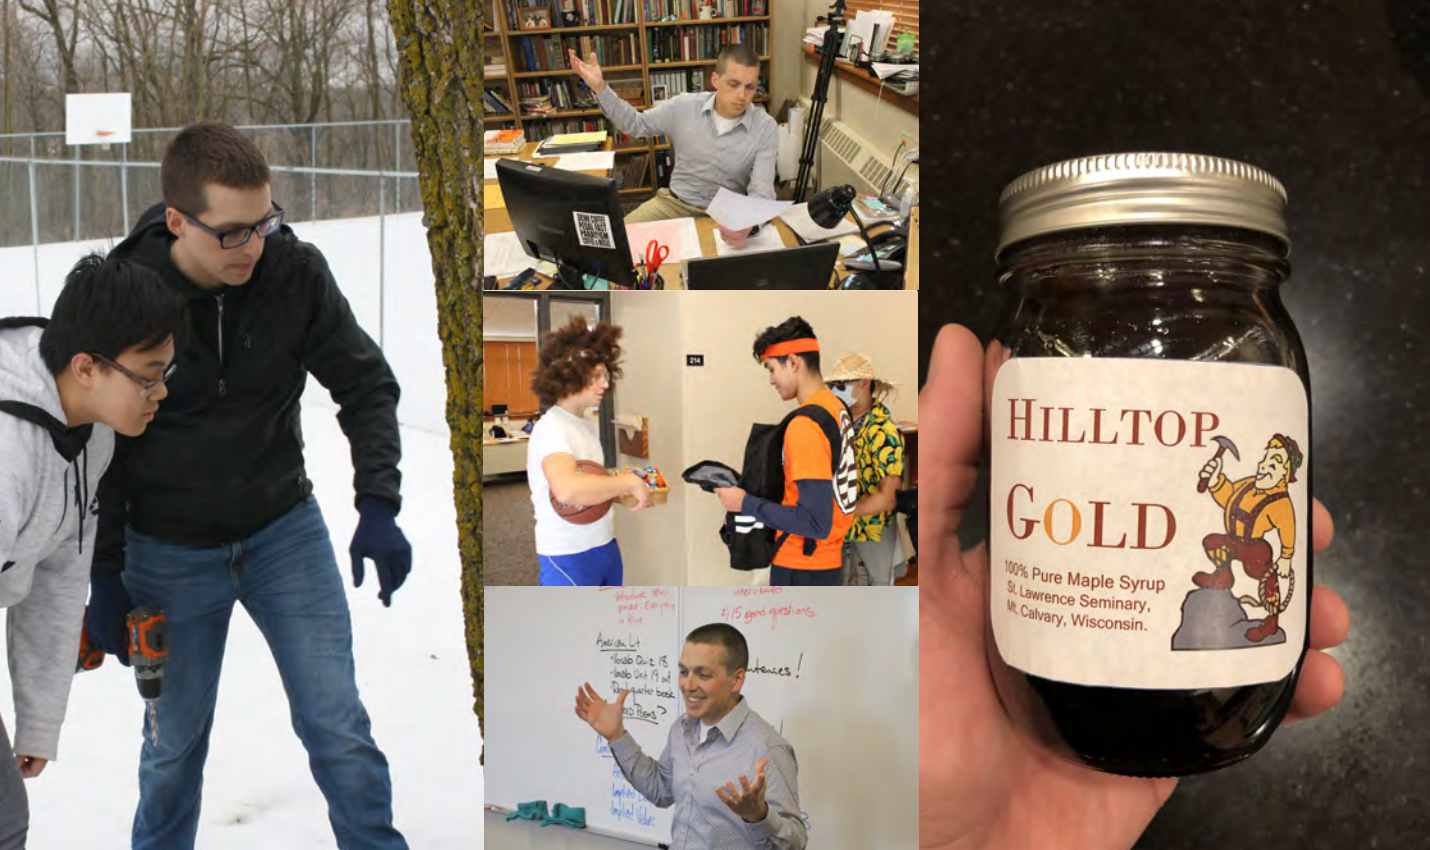 """a compilation of photos of Mr. Van Asten: looking at a tree with a student, in his office, wearing a wig and posing with a basketball, teaching in front of a whiteboard and holding a jar of """"Hilltop Gold"""" maple syrup"""